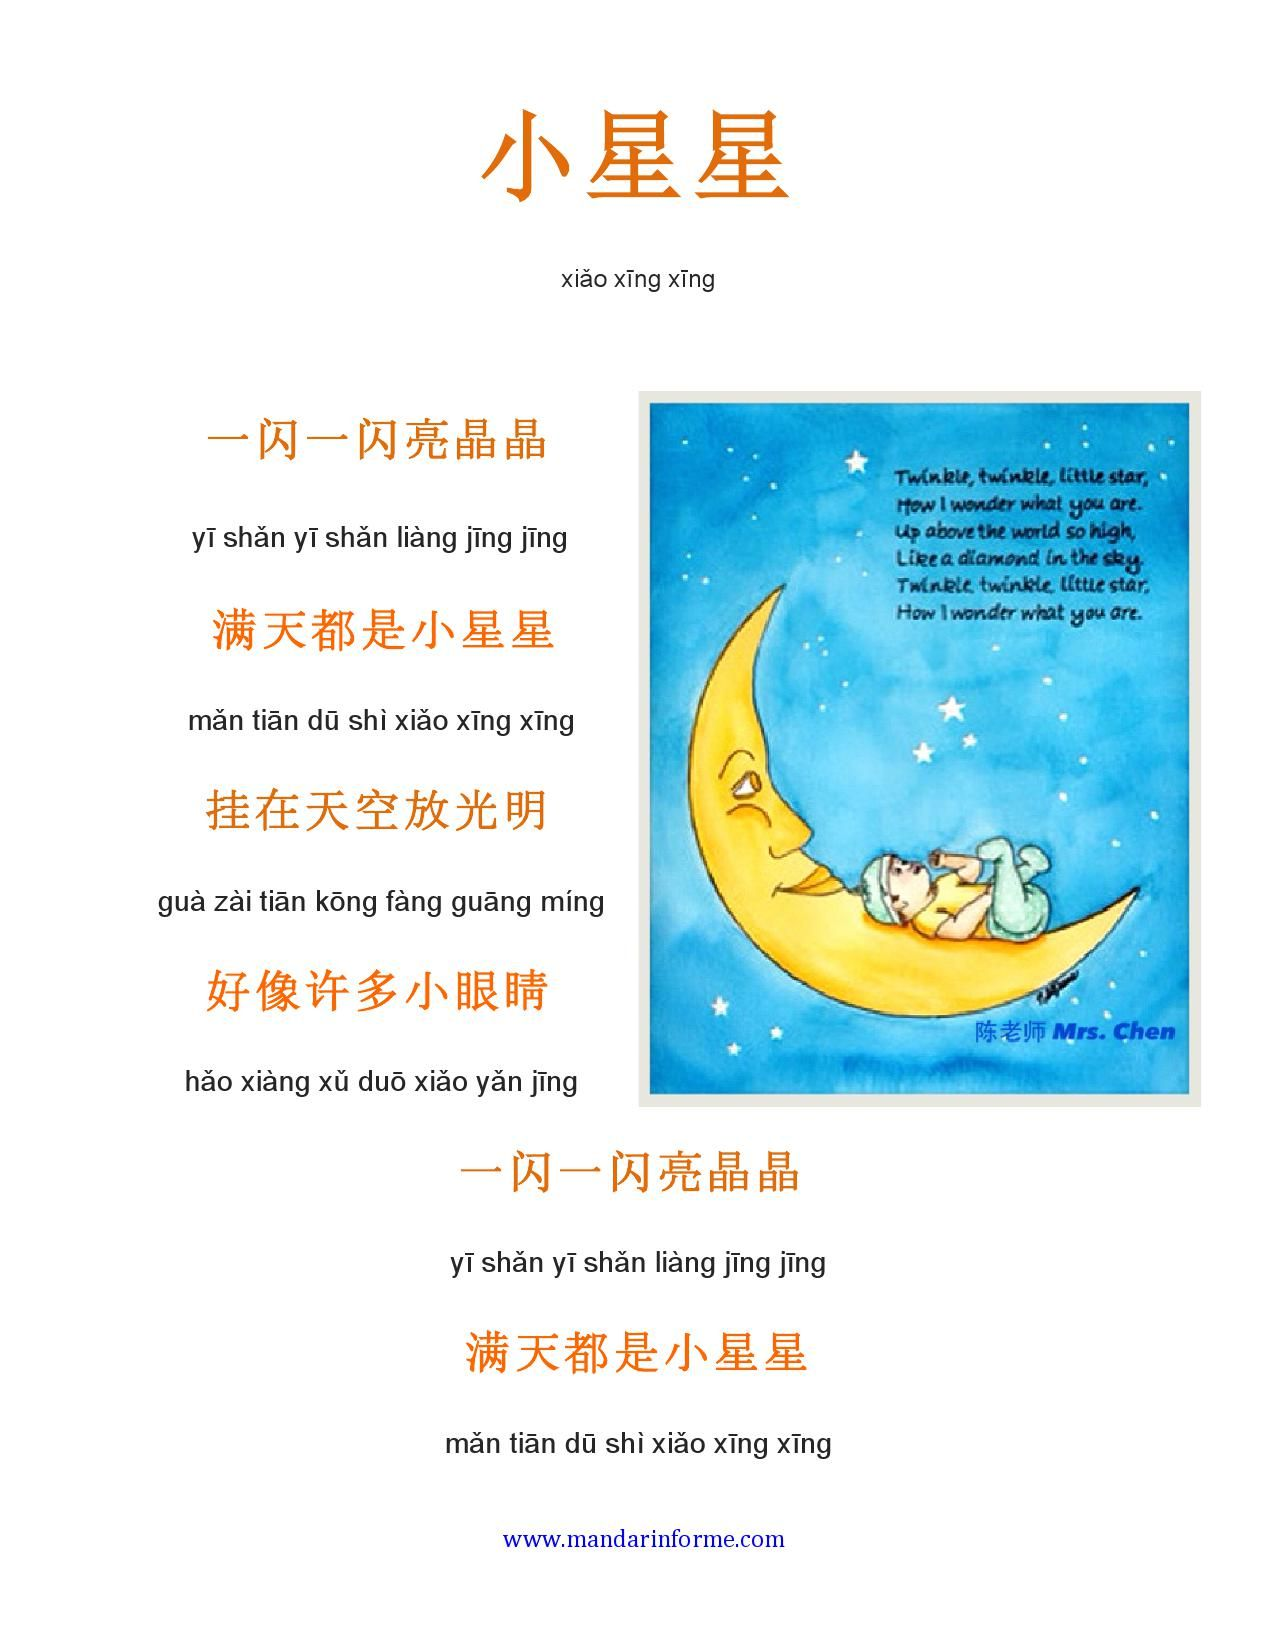 Awesome Songs And Videos With Lyric Sheets In Chinese Chinese